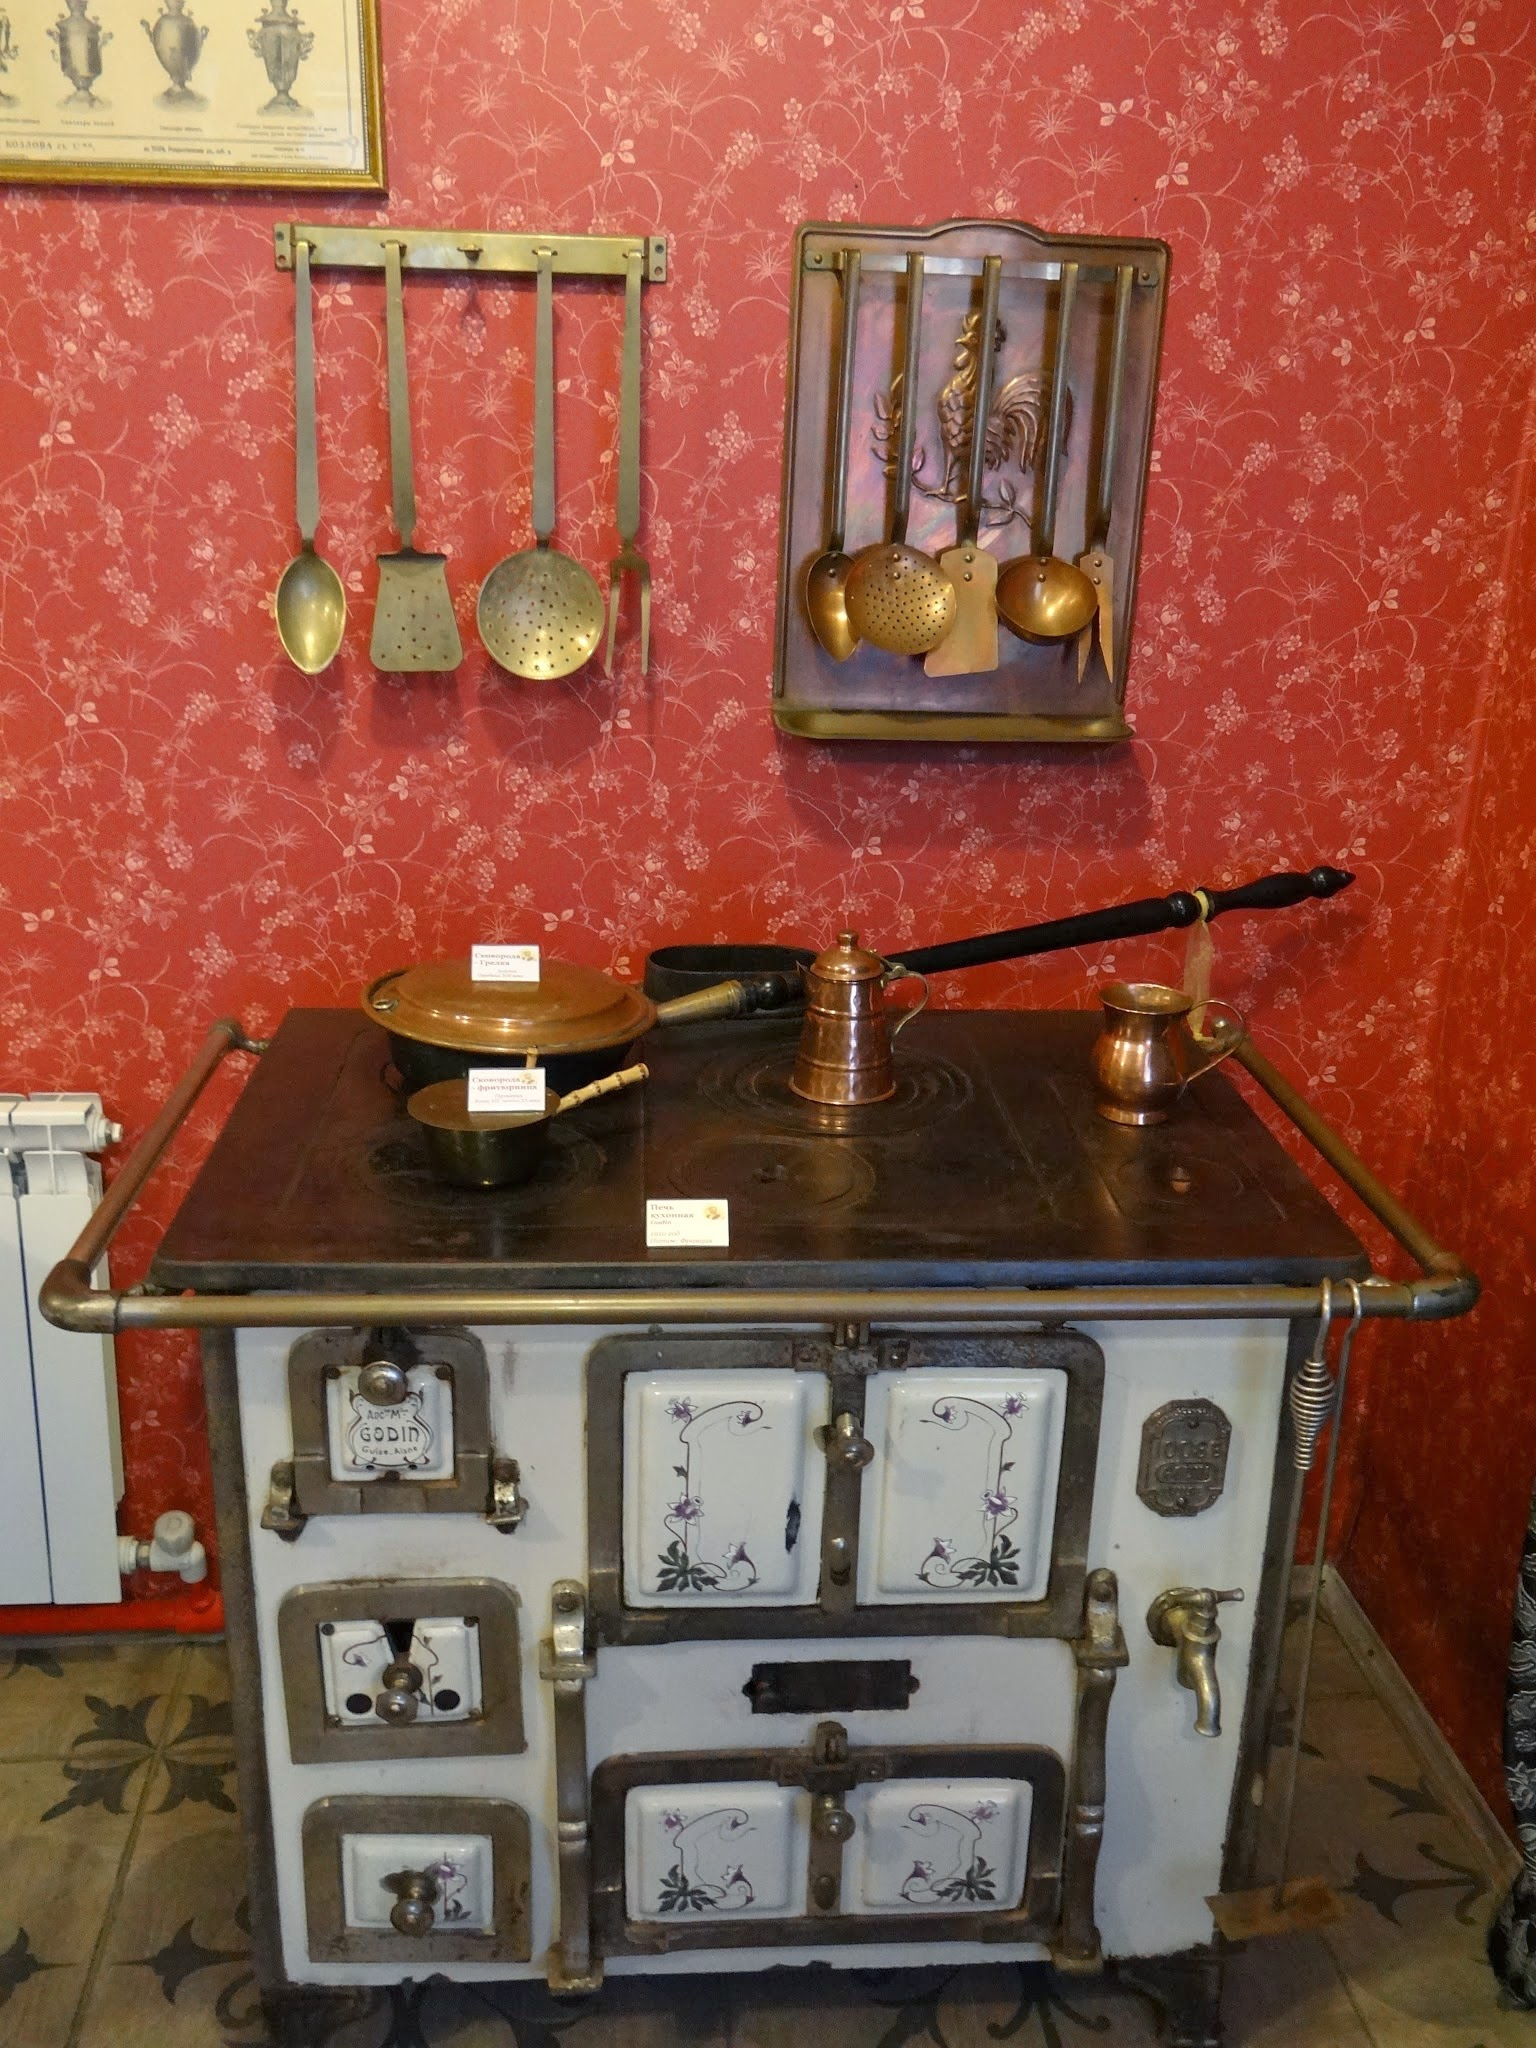 vyatskoye russia museum kitchen equipment.jpg